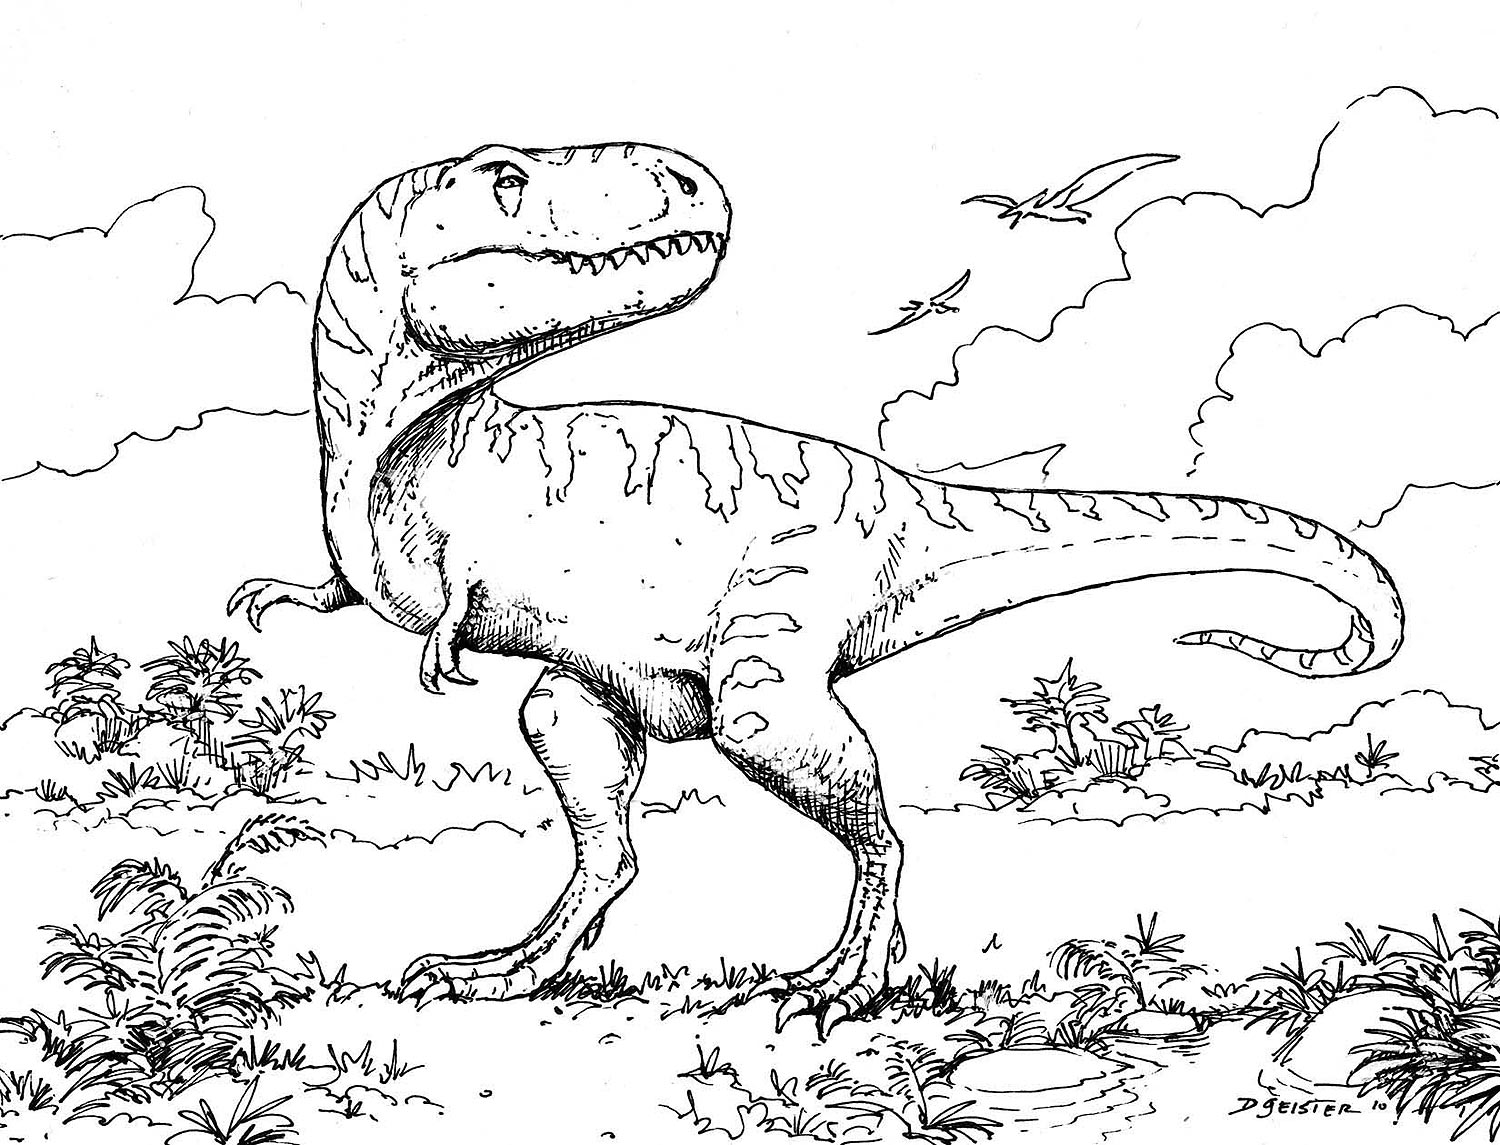 dinosaurs coloring page the good dinosaur coloring pages to download and print for dinosaurs coloring page